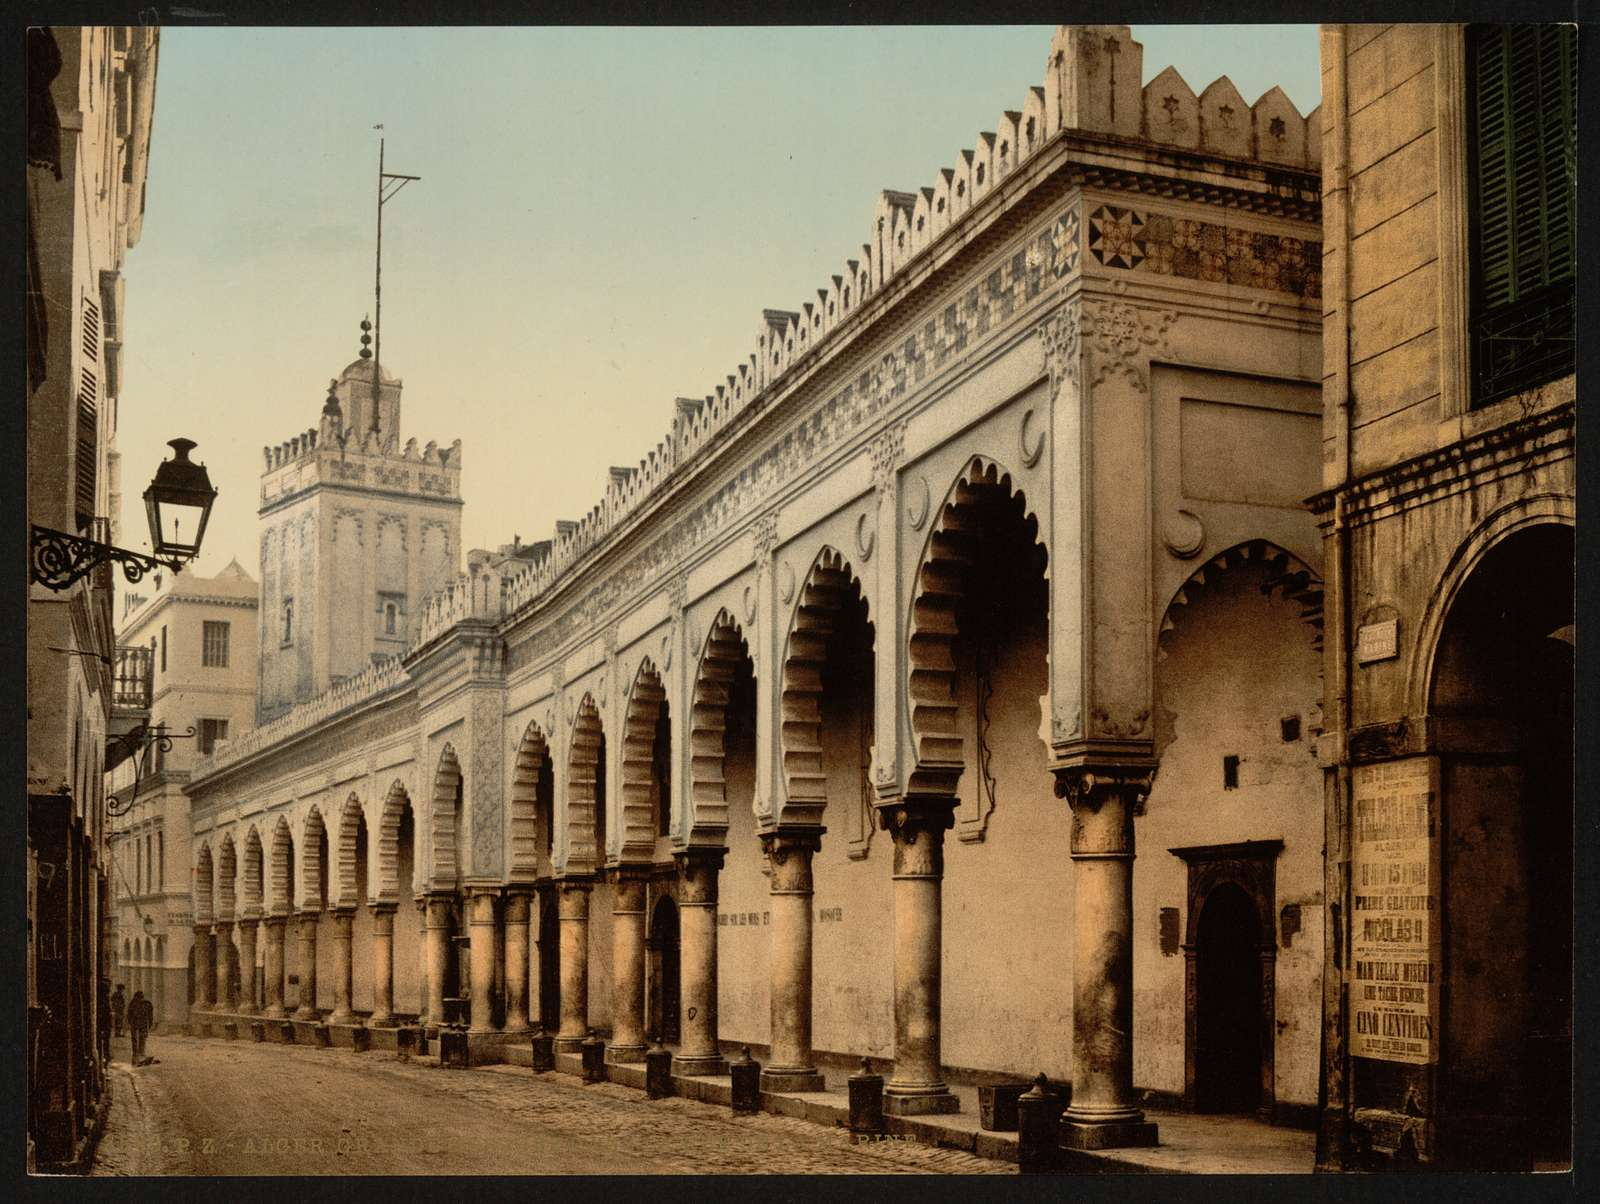 [Great mosque in the marine street, Algiers, Algeria]